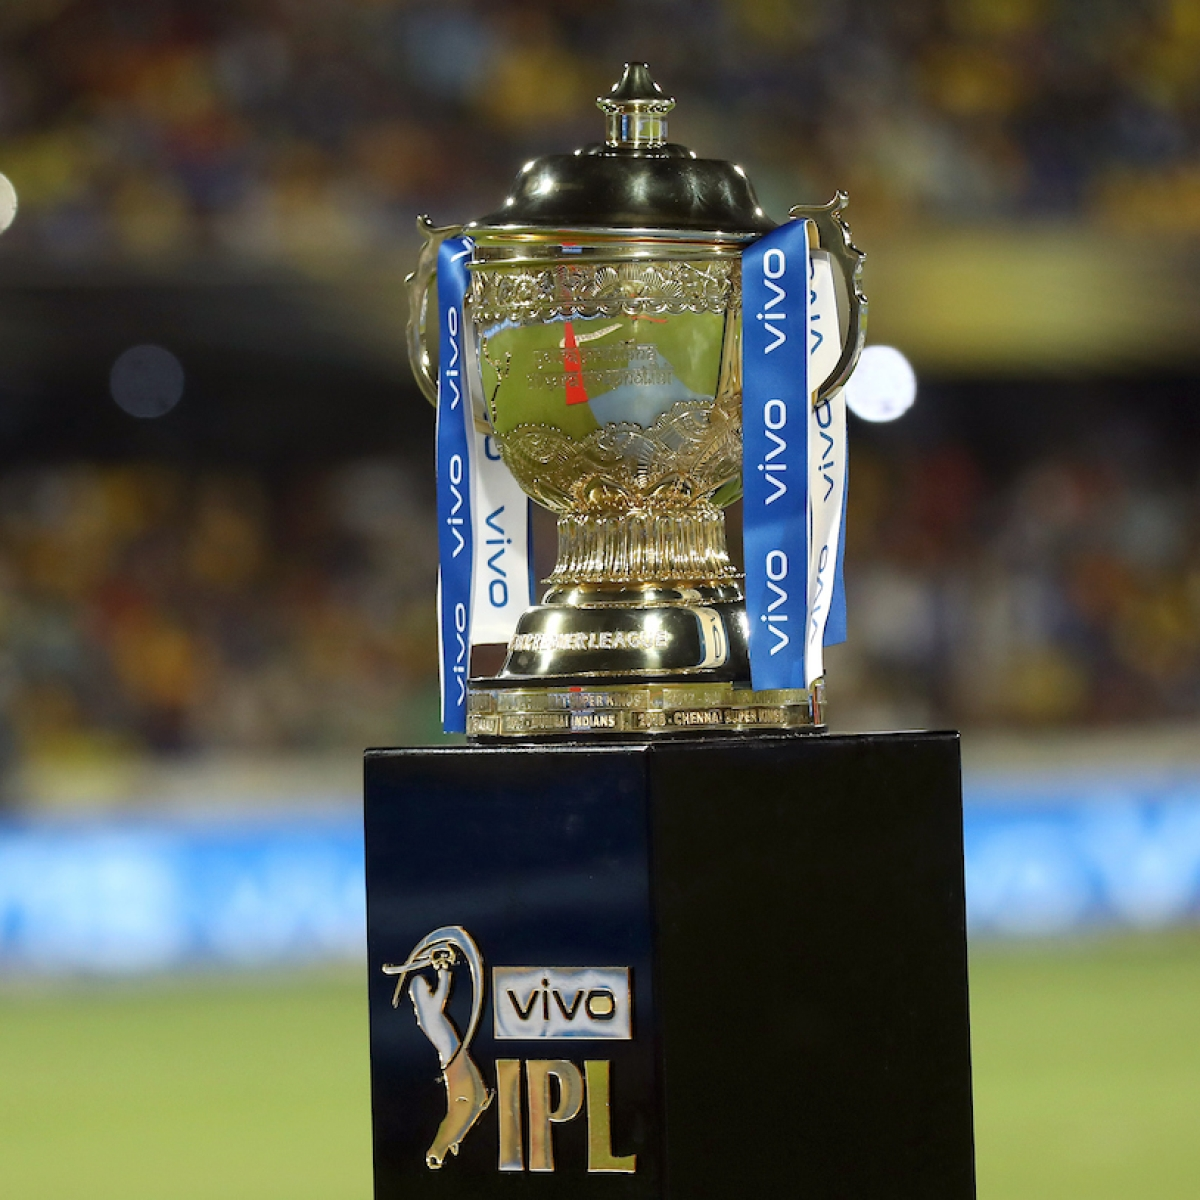 IPL 2020 postponed to April 15 due to coronavirus outbreak